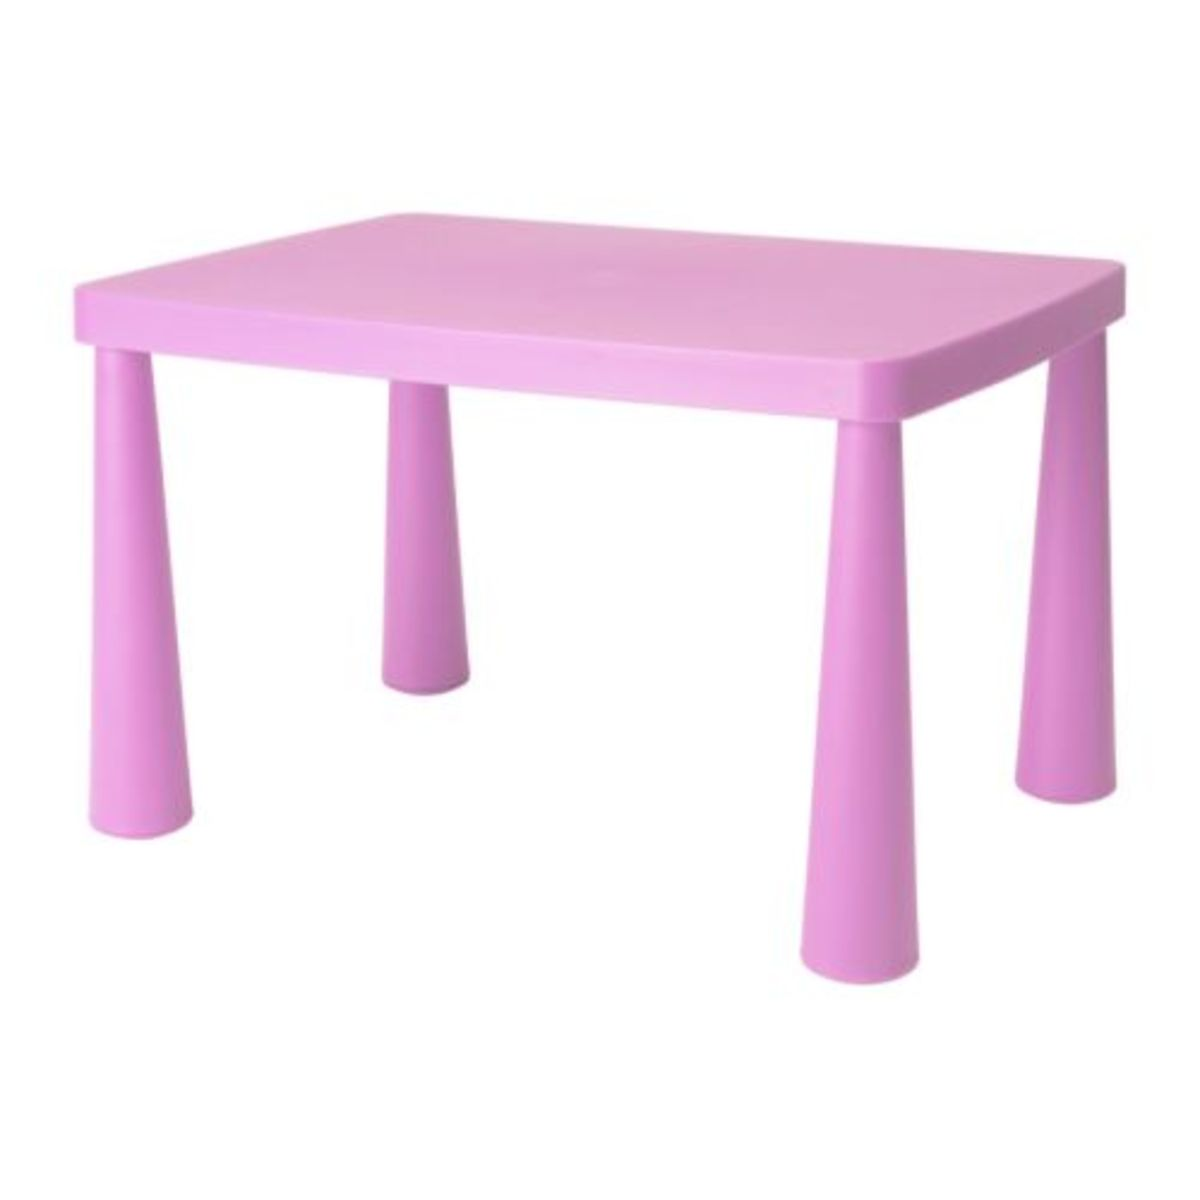 the-pink-table-story